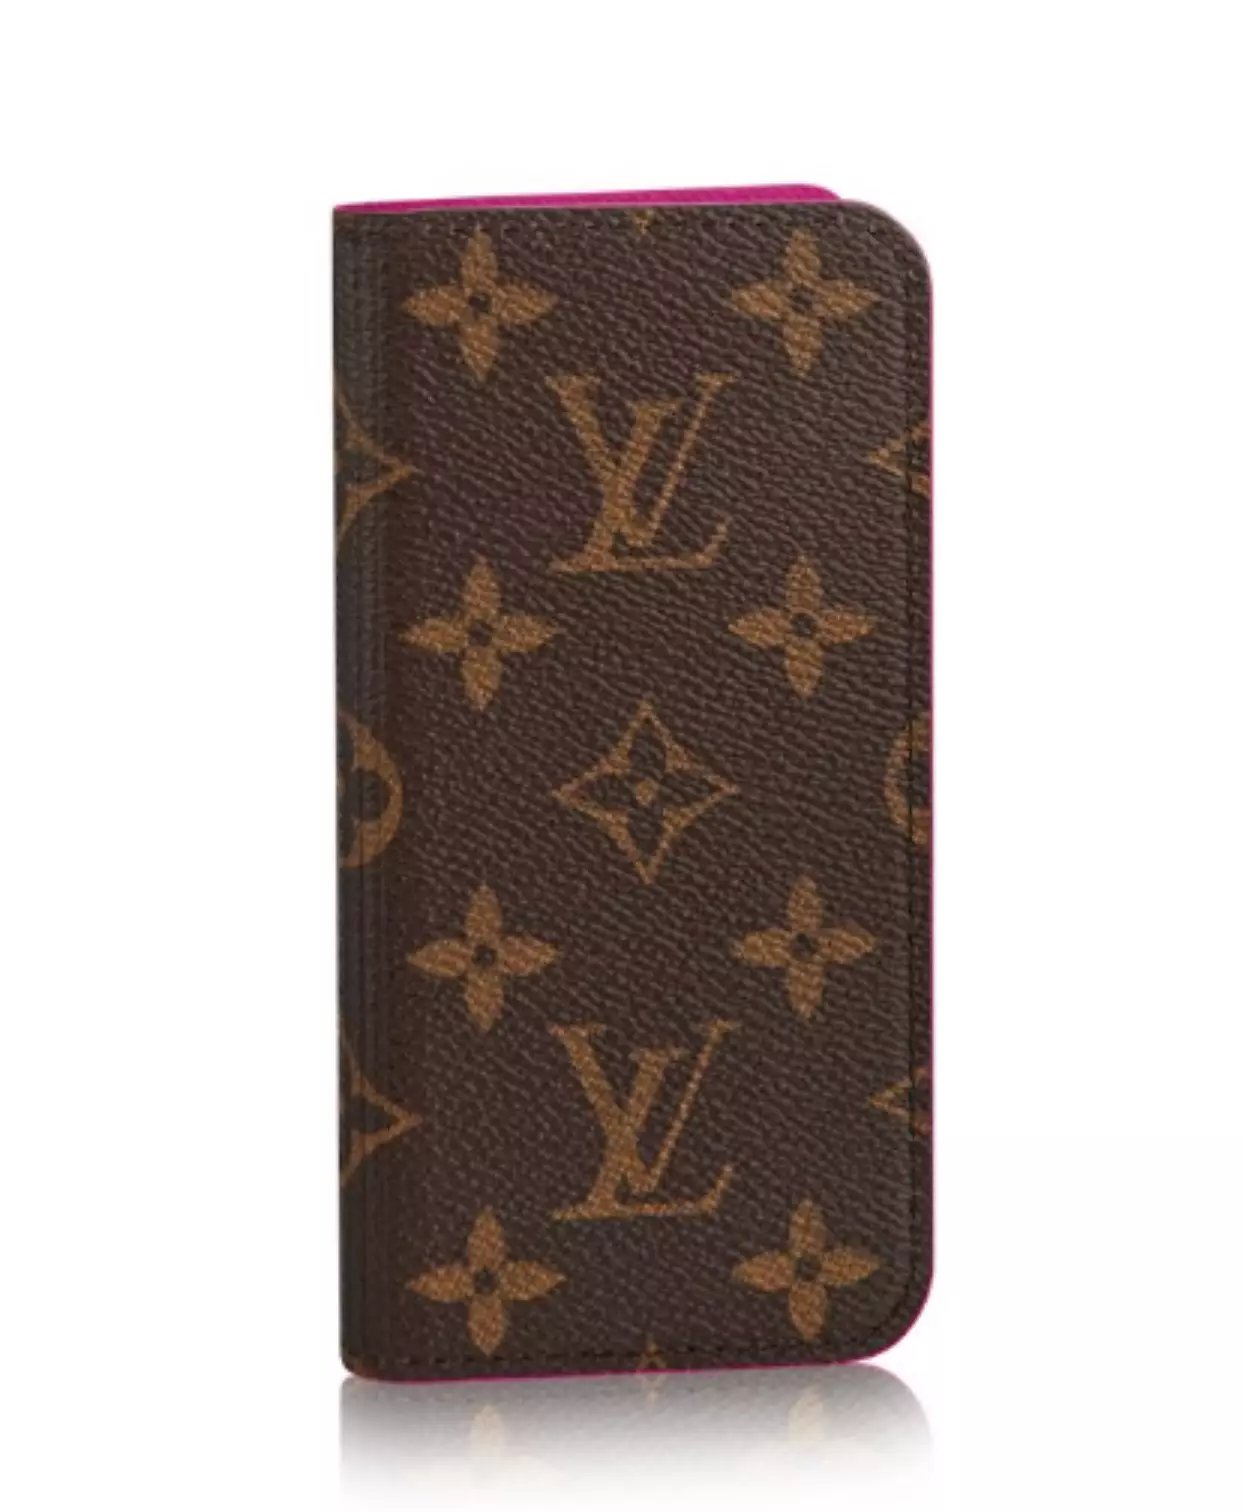 handyhülle iphone eigene iphone hülle Louis Vuitton iphone7 Plus hülle iphone das neueste iphone schale ca7 iphone 7 Plus piphone 7 Plus leder iphone 7 Plus wann kommt der neue iphone